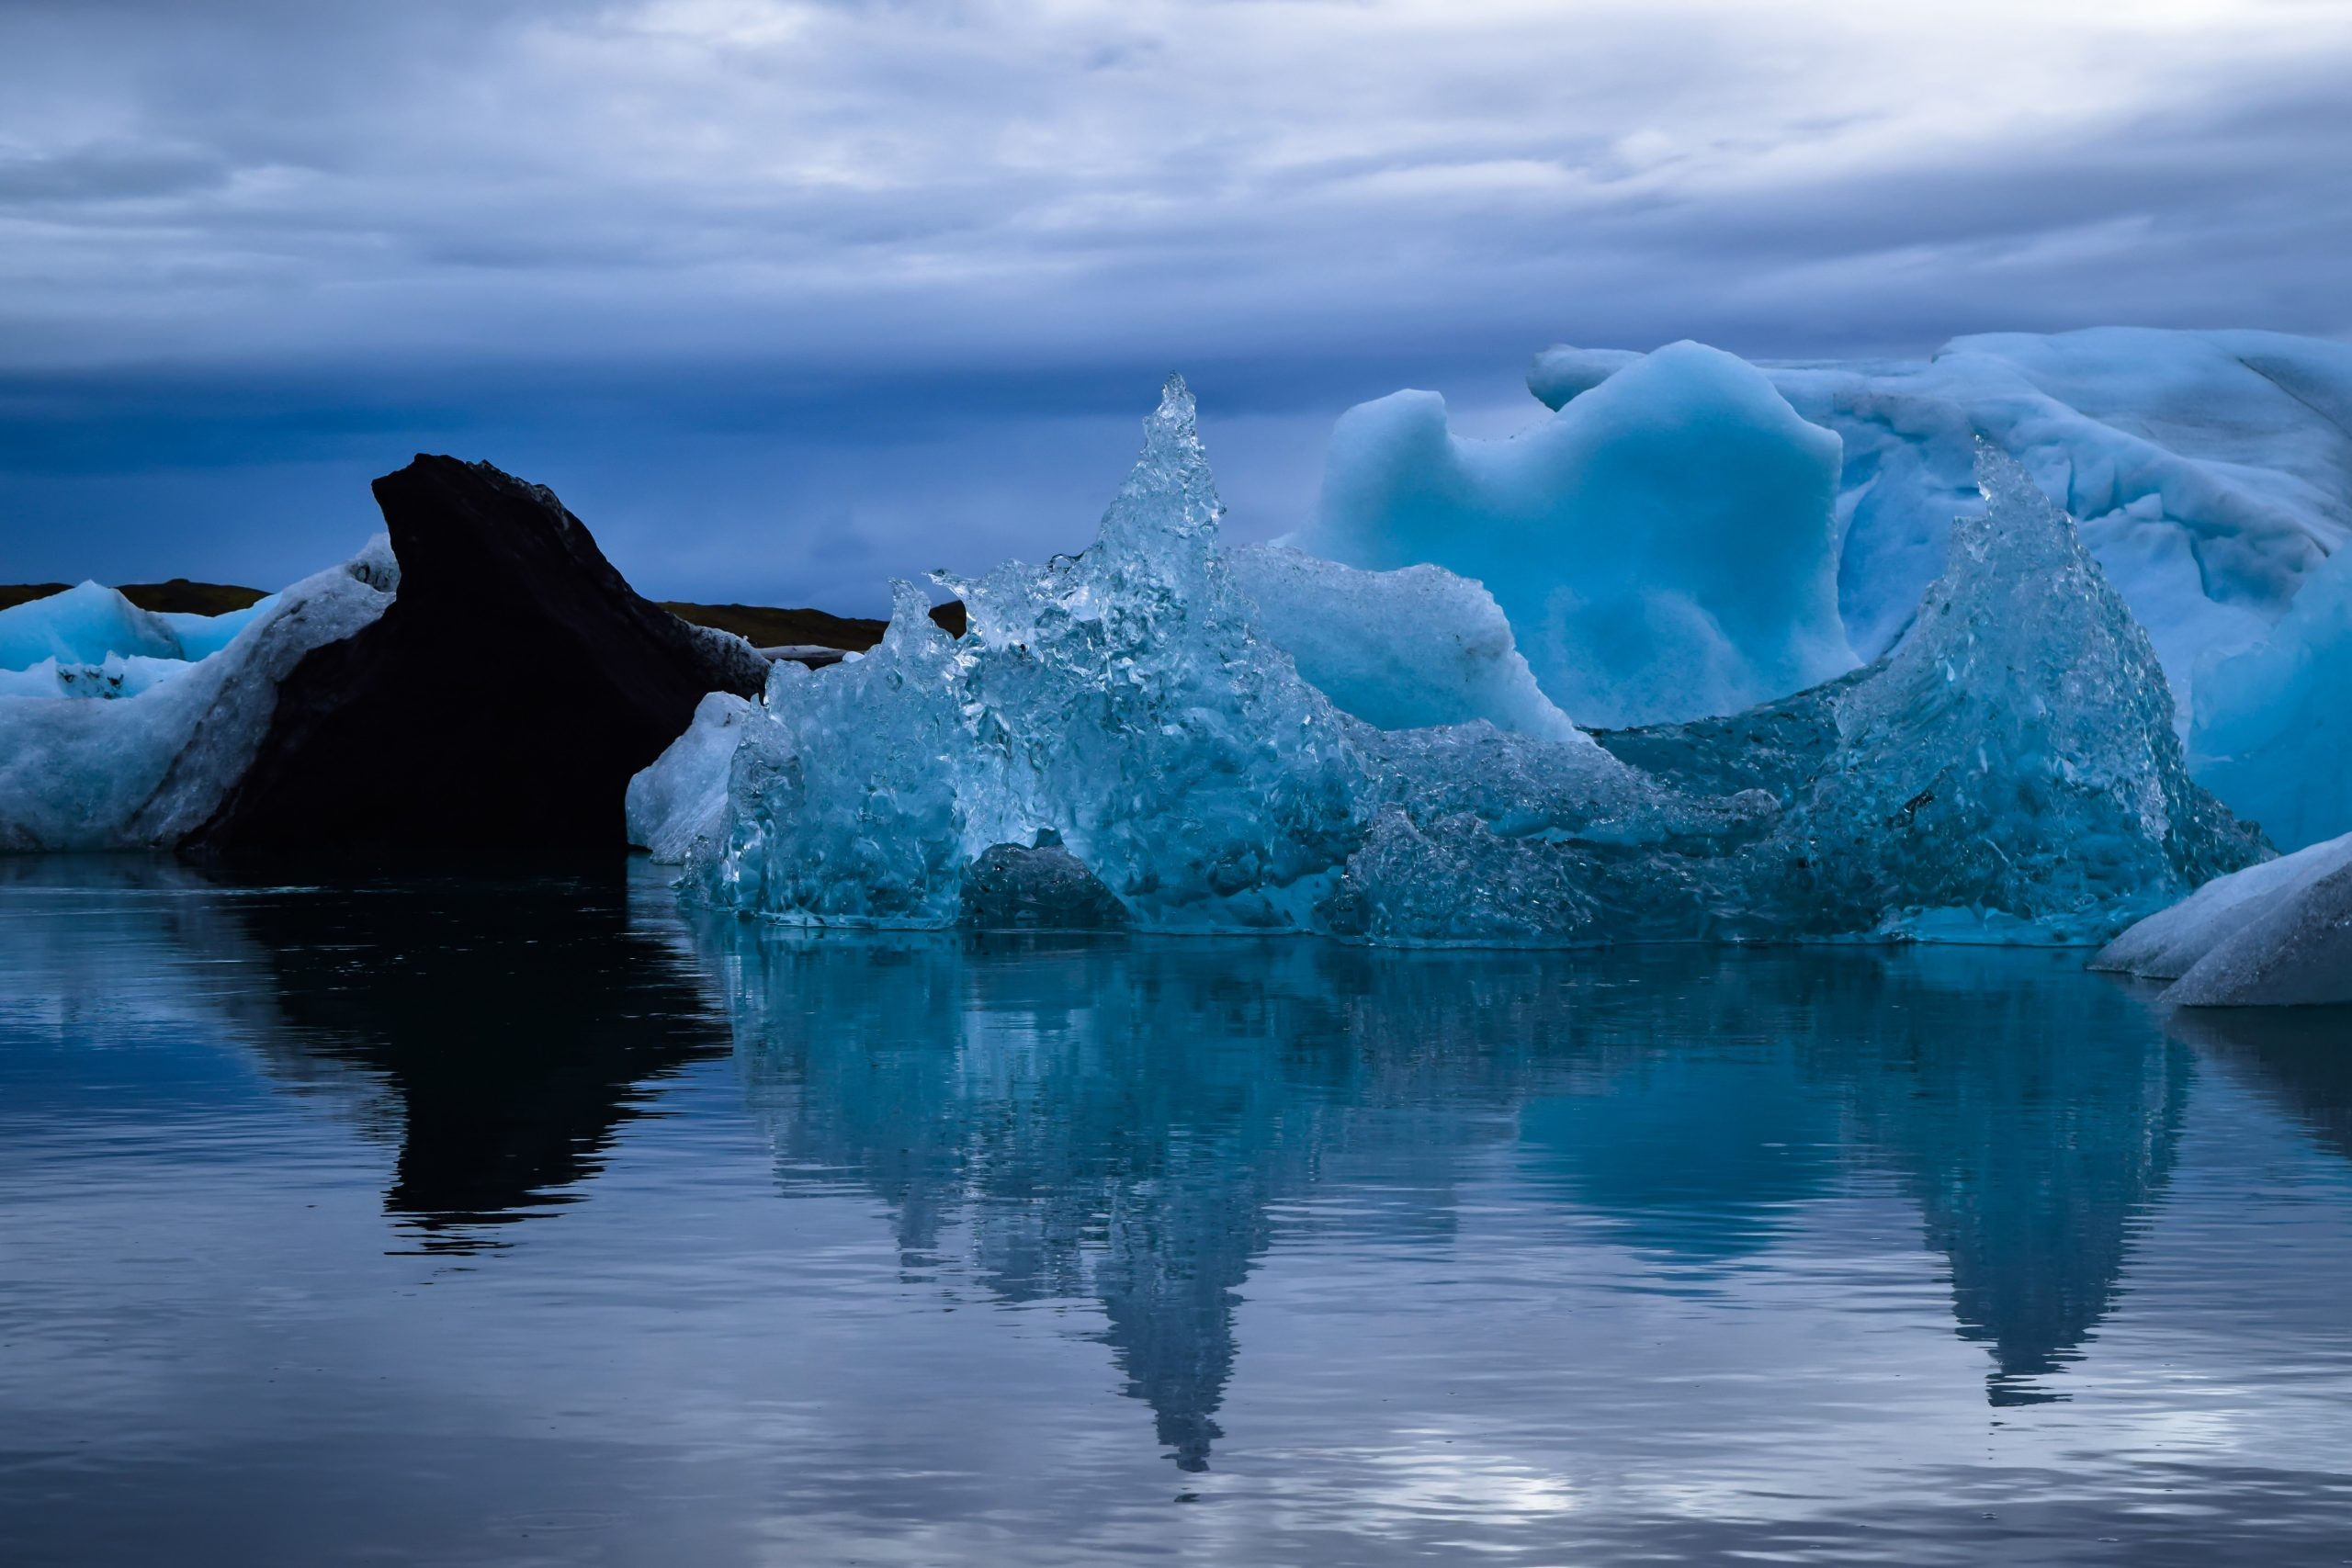 Glacier Lagoon with glaciers floating in the water